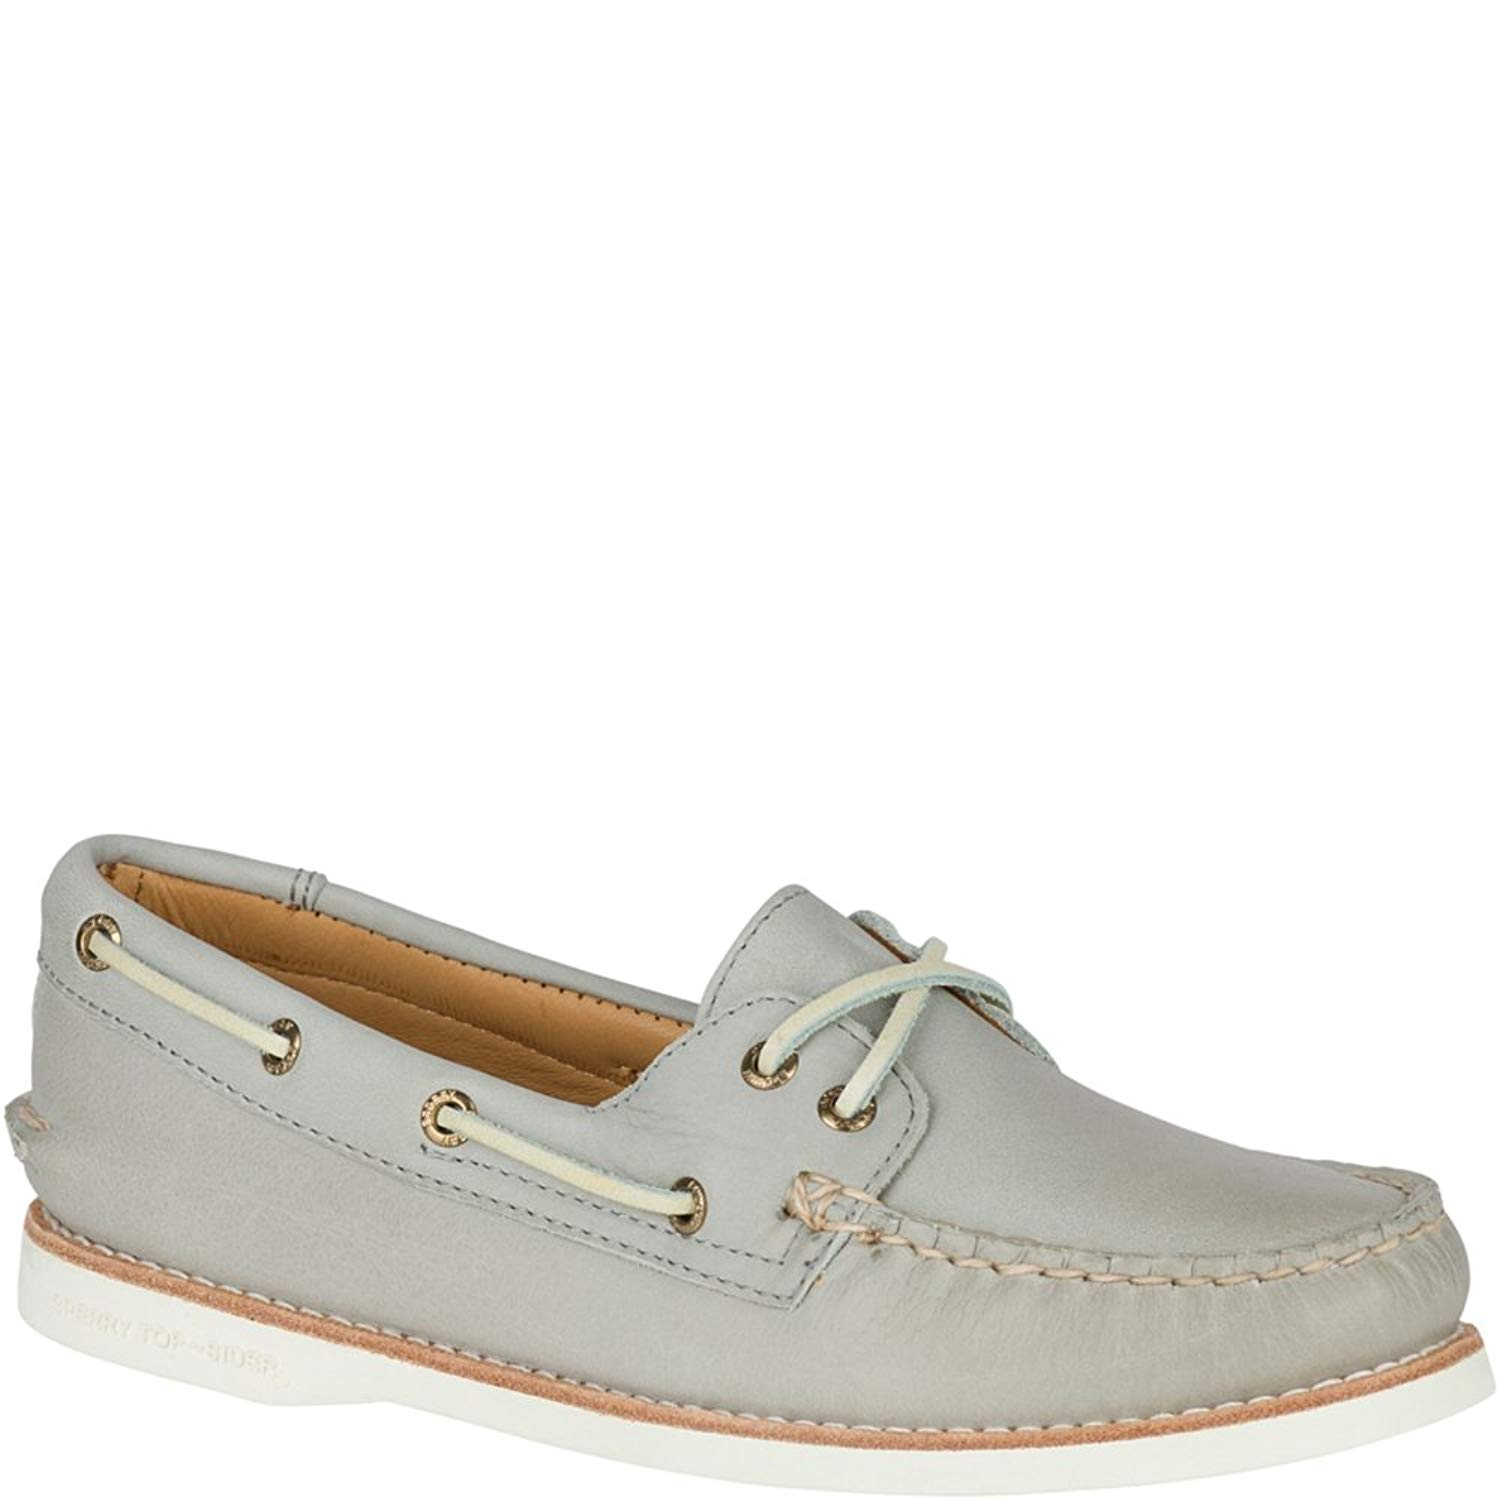 f015cdbb81 Get Quotations · Sperry Top-Sider Gold Cup Womens Light Grey Boat Shoes